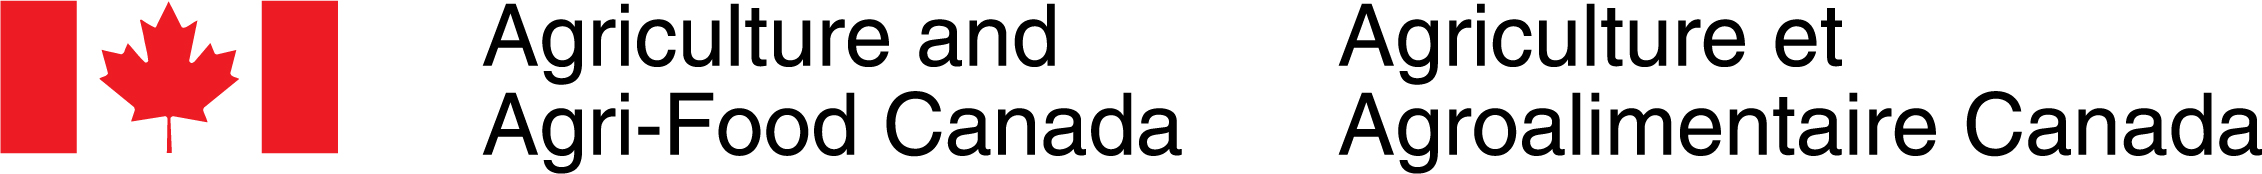 Logo d'Agriculture et Agroalimentaire Canada